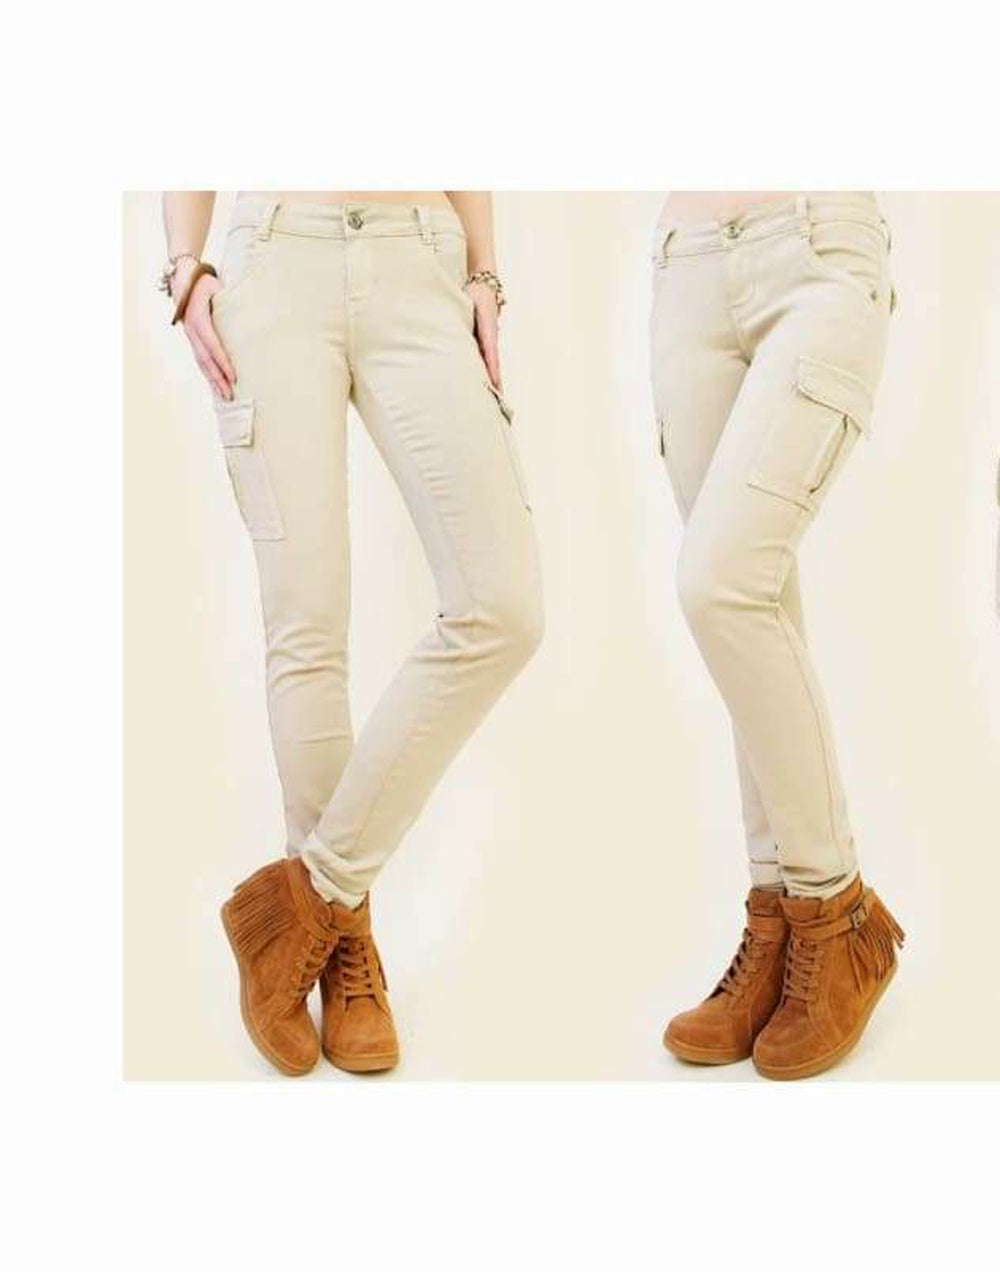 Women's Slim Fit Cargo Pants - Colour - Stone Combat Trousers has 6 pockets